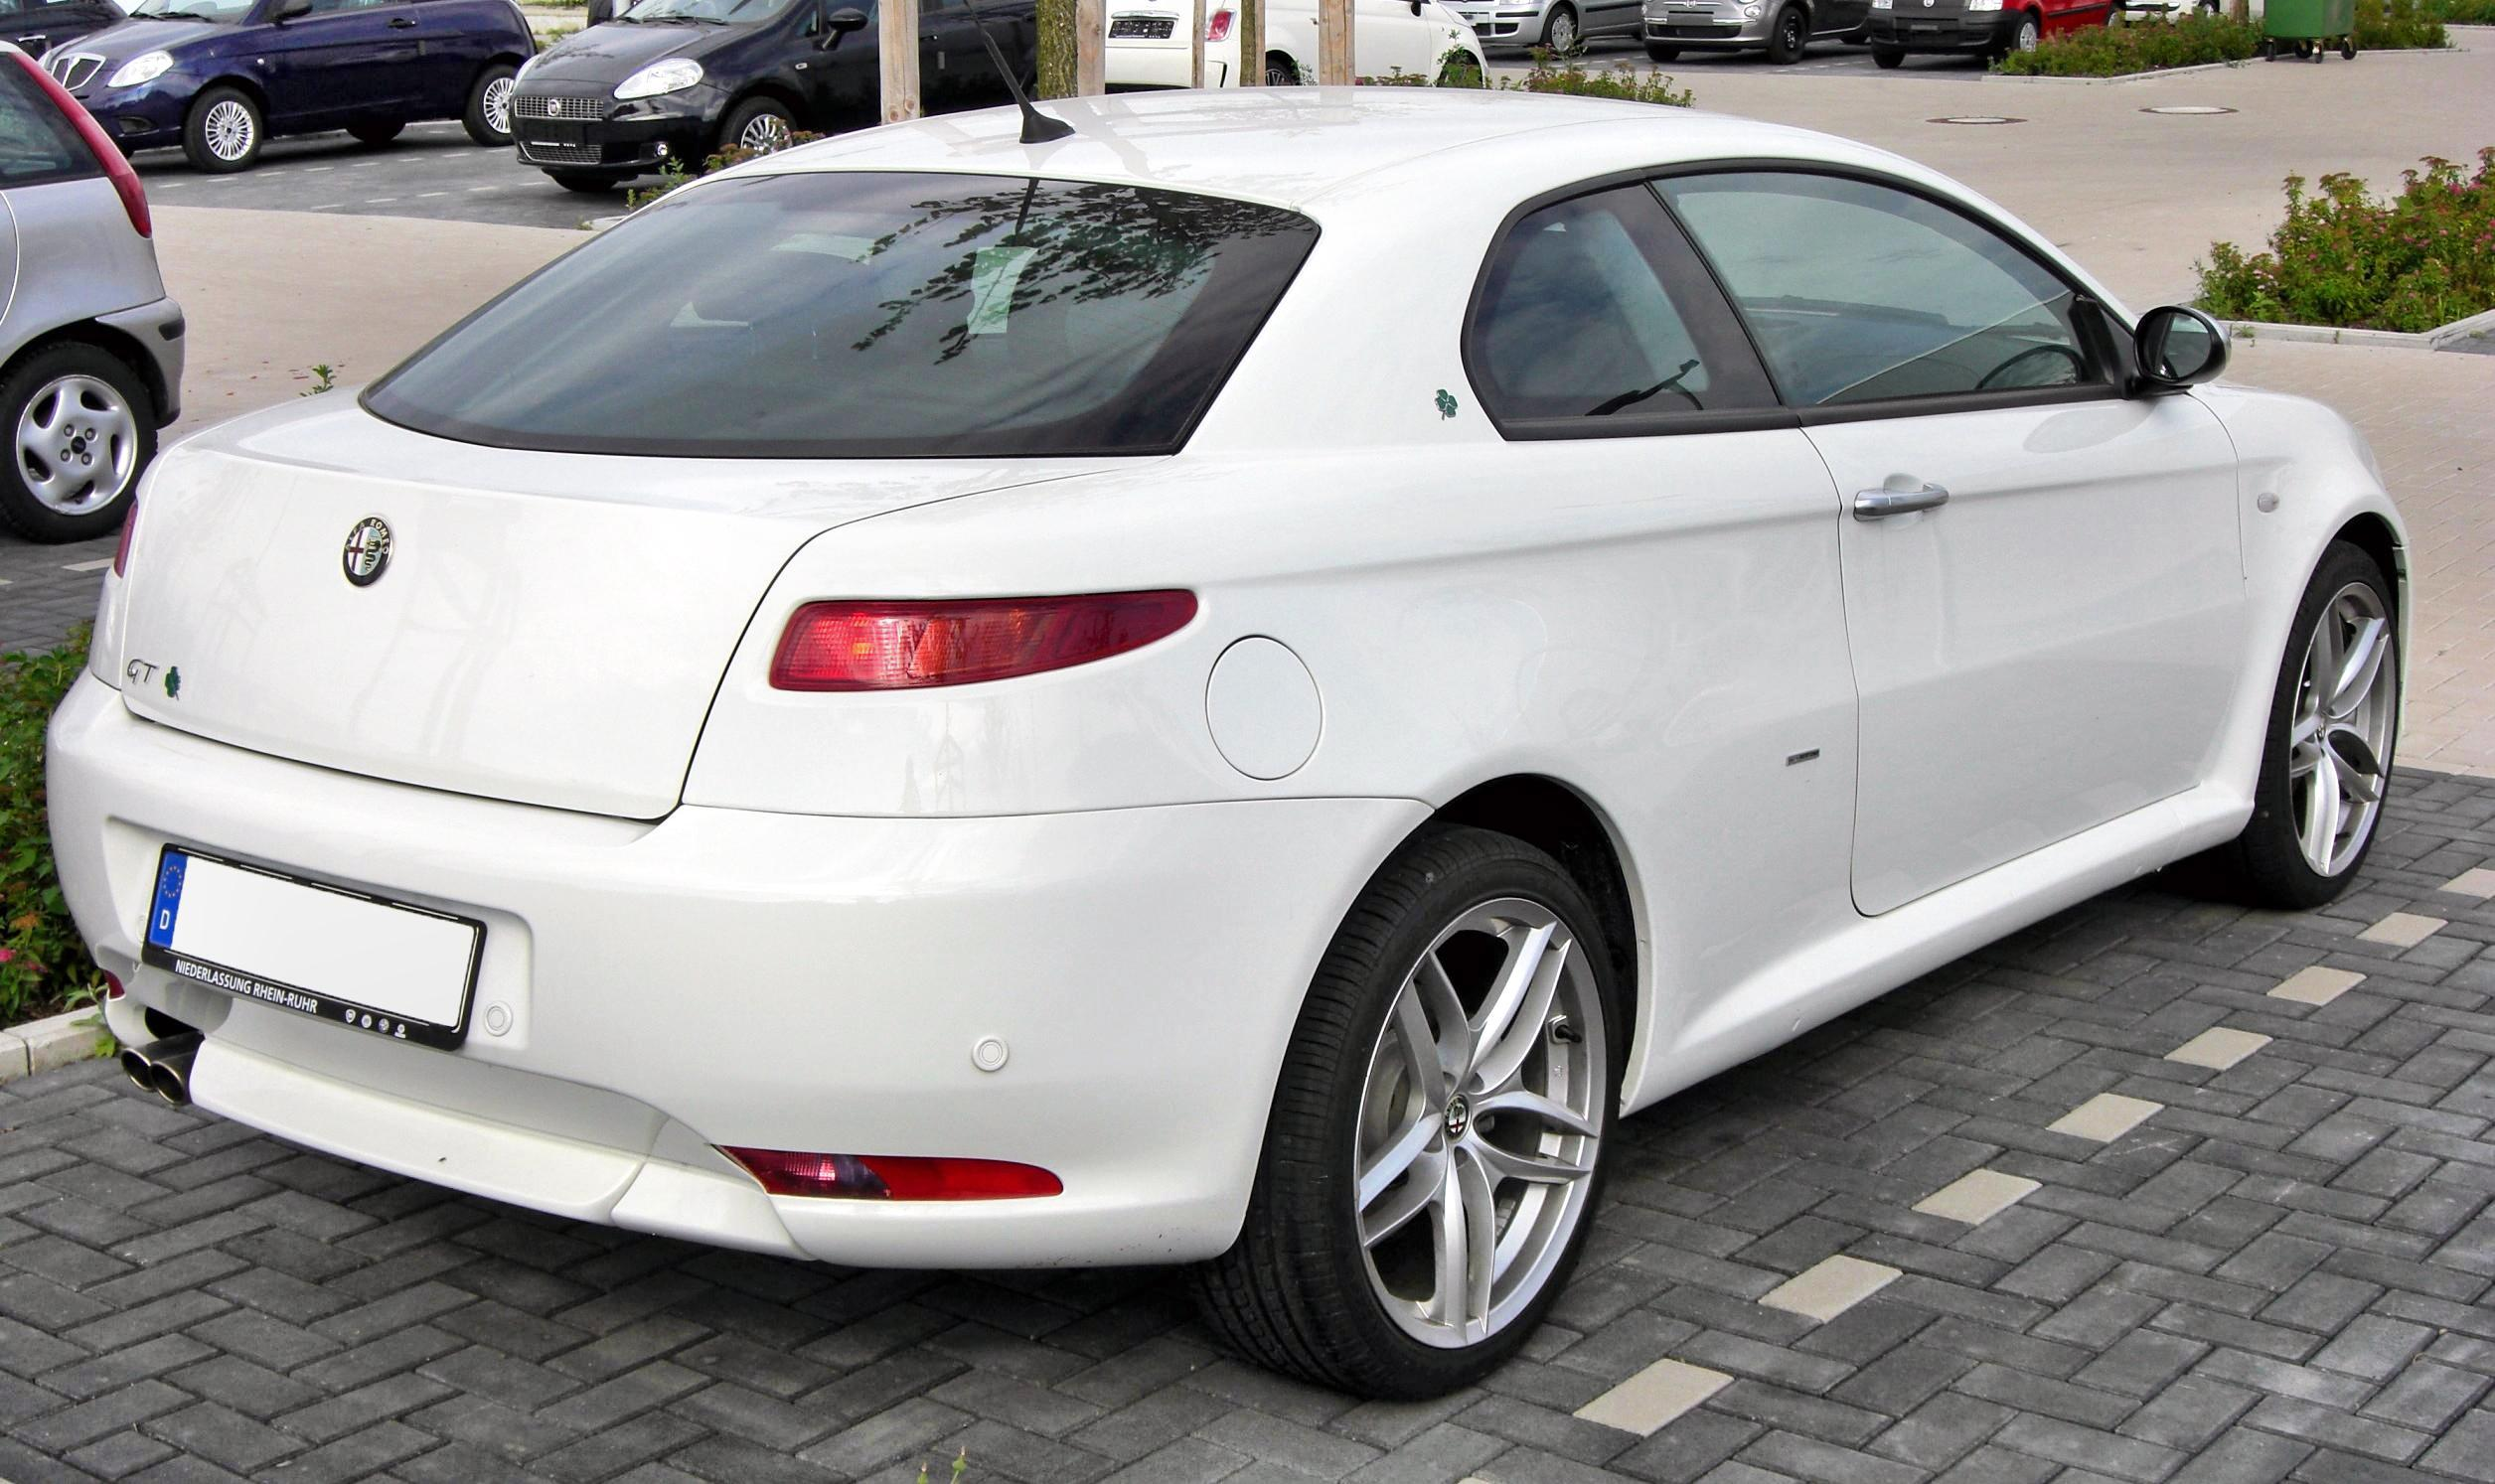 2005 alfa romeo gt coupe pictures information and specs. Black Bedroom Furniture Sets. Home Design Ideas